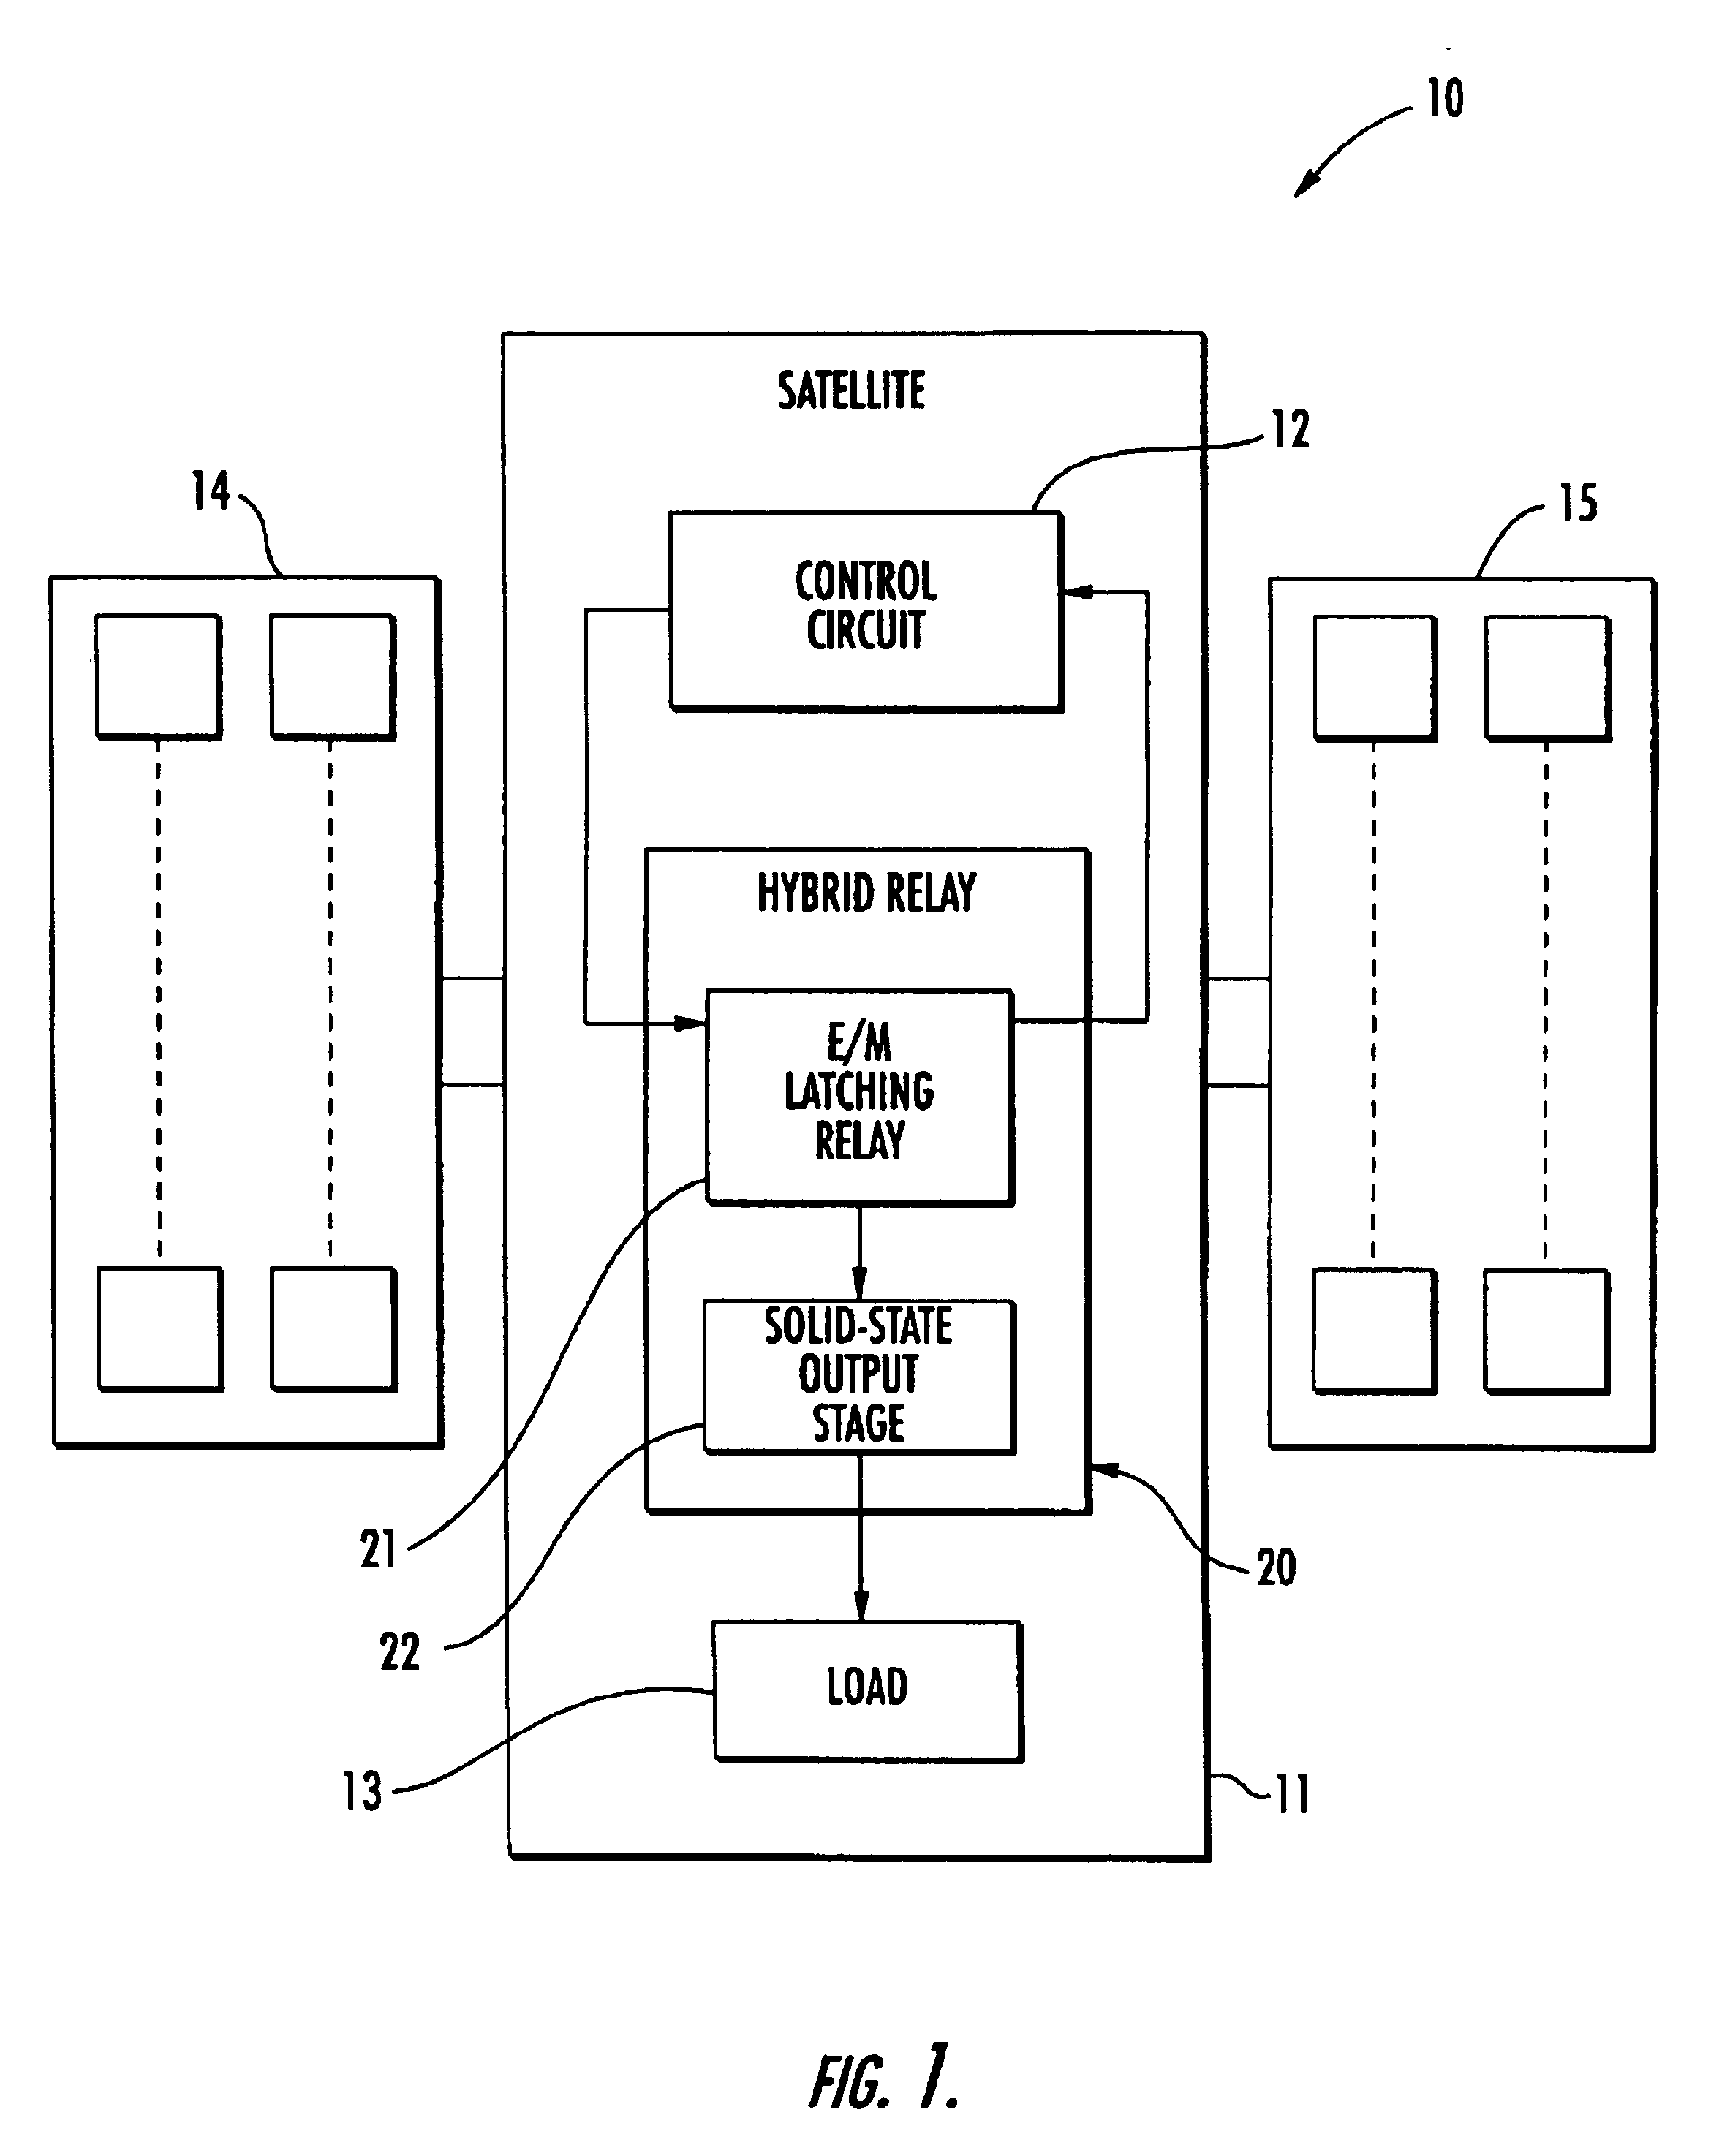 Patent Us6917500 Hybrid Relay Including Solid State Output And Watlow Drawing